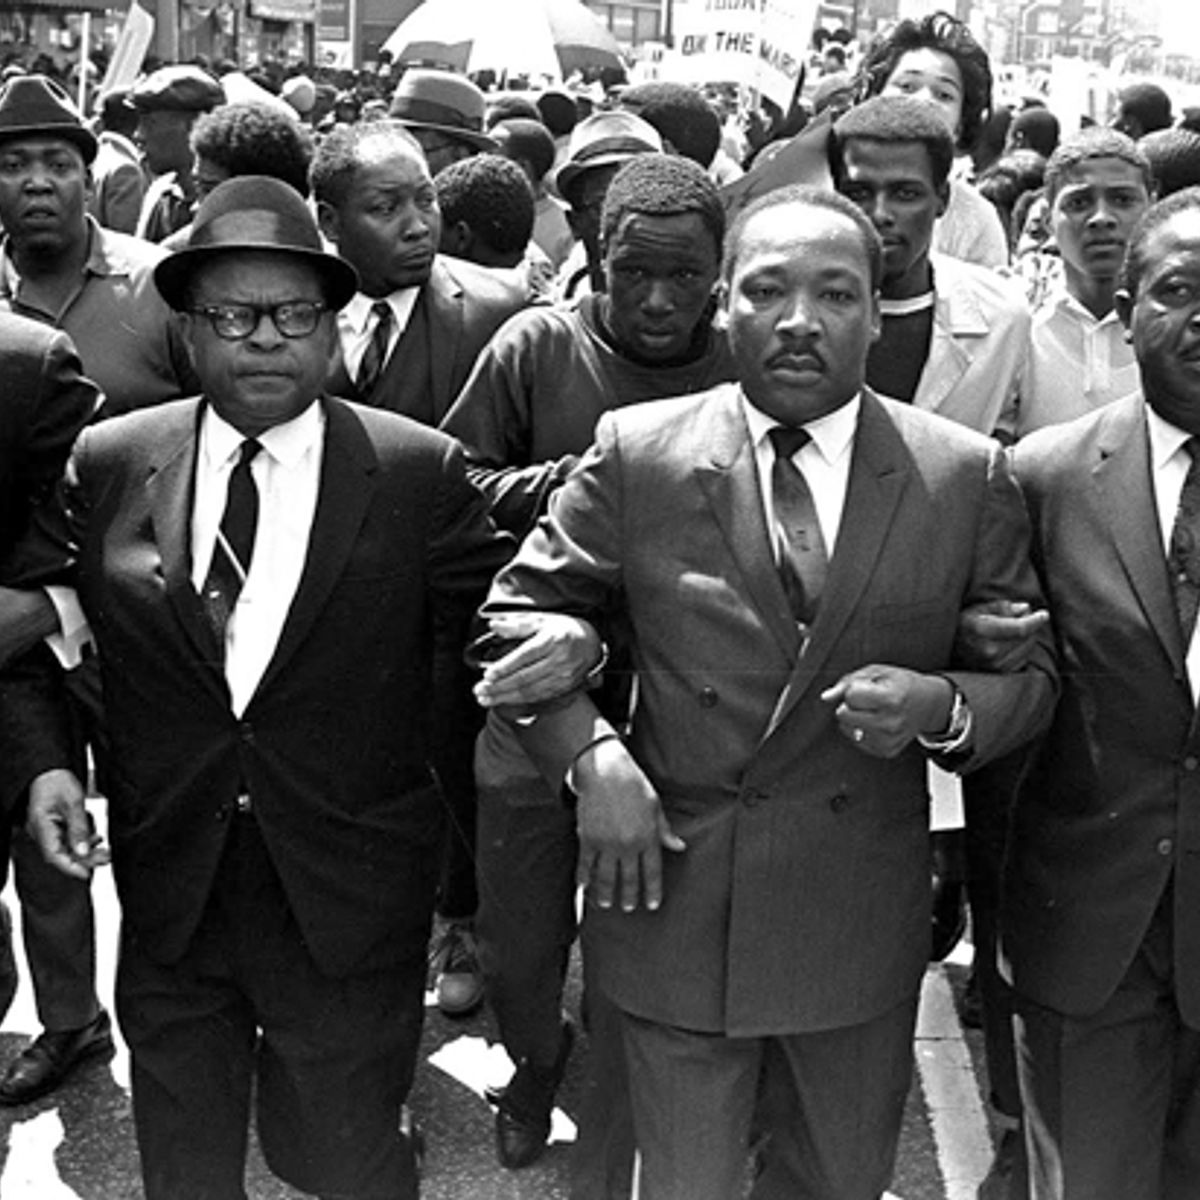 Channel your Agape: Why a fractured nation needs to remember MLK's message of love